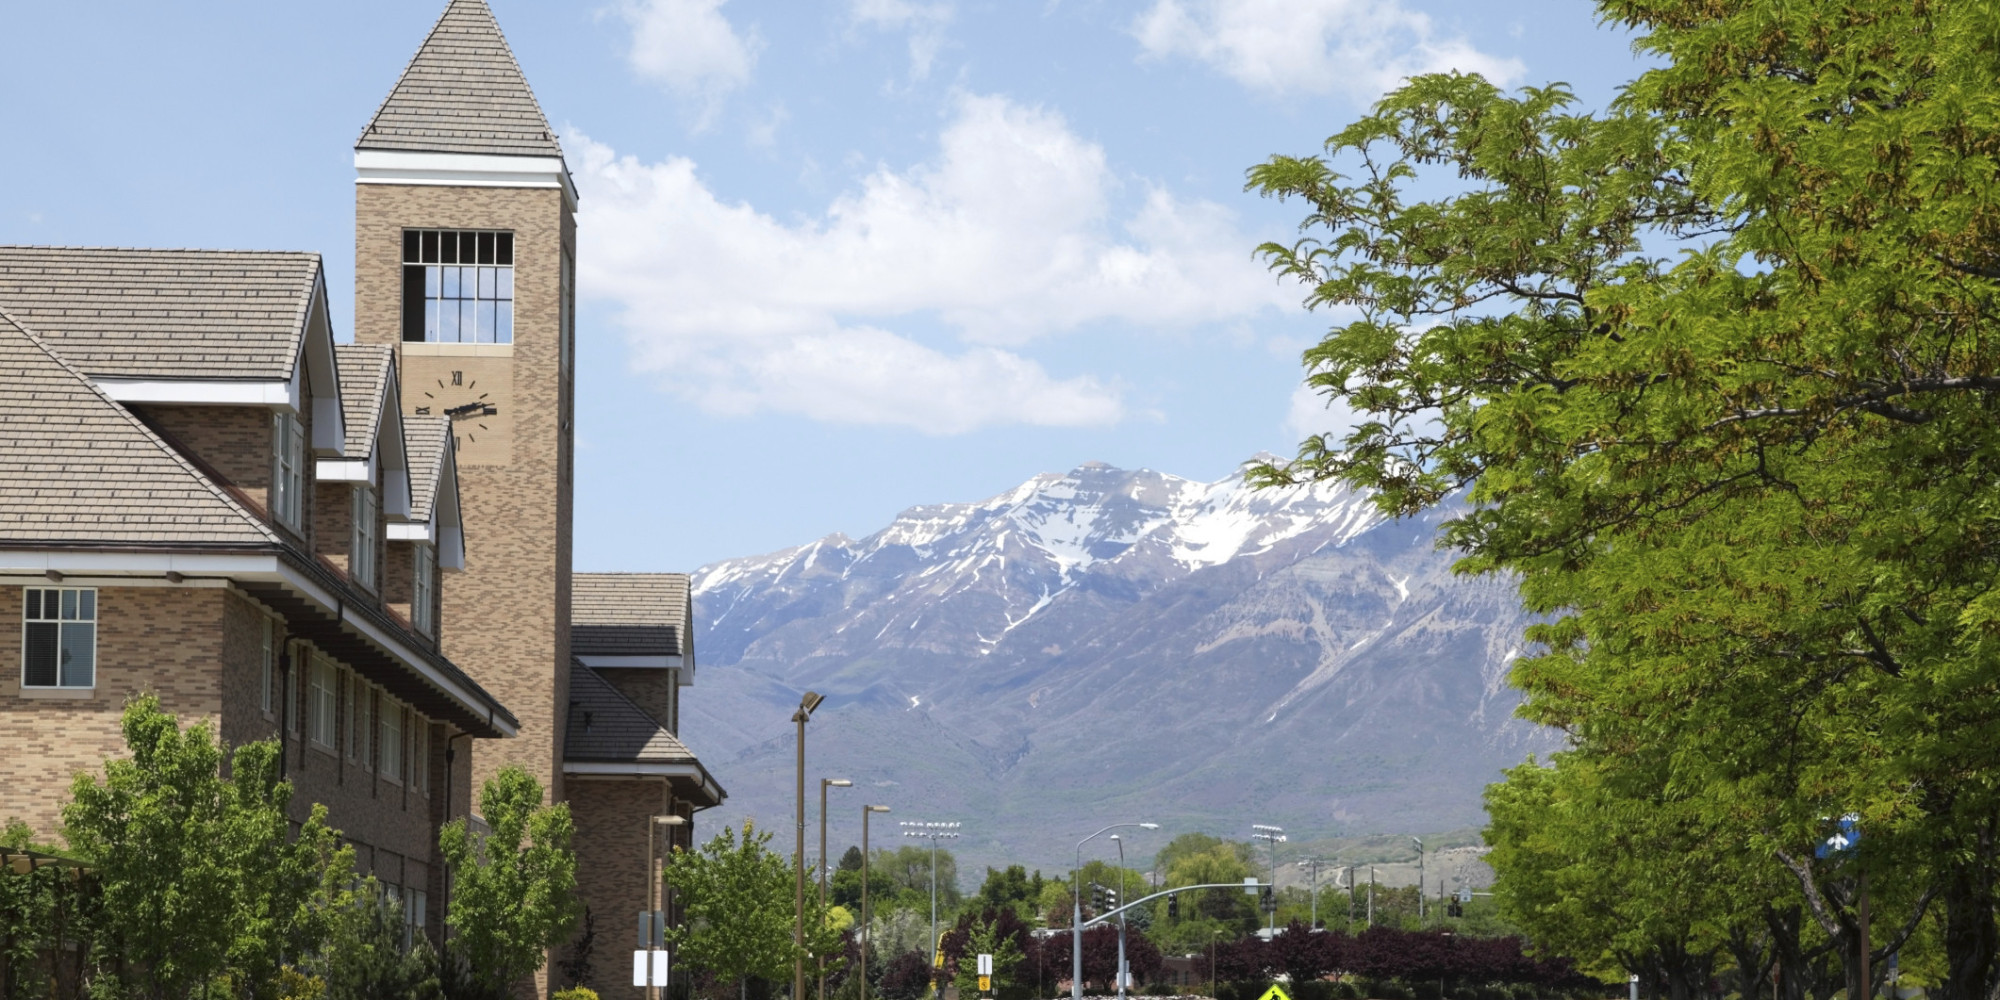 Could I get into BYU?